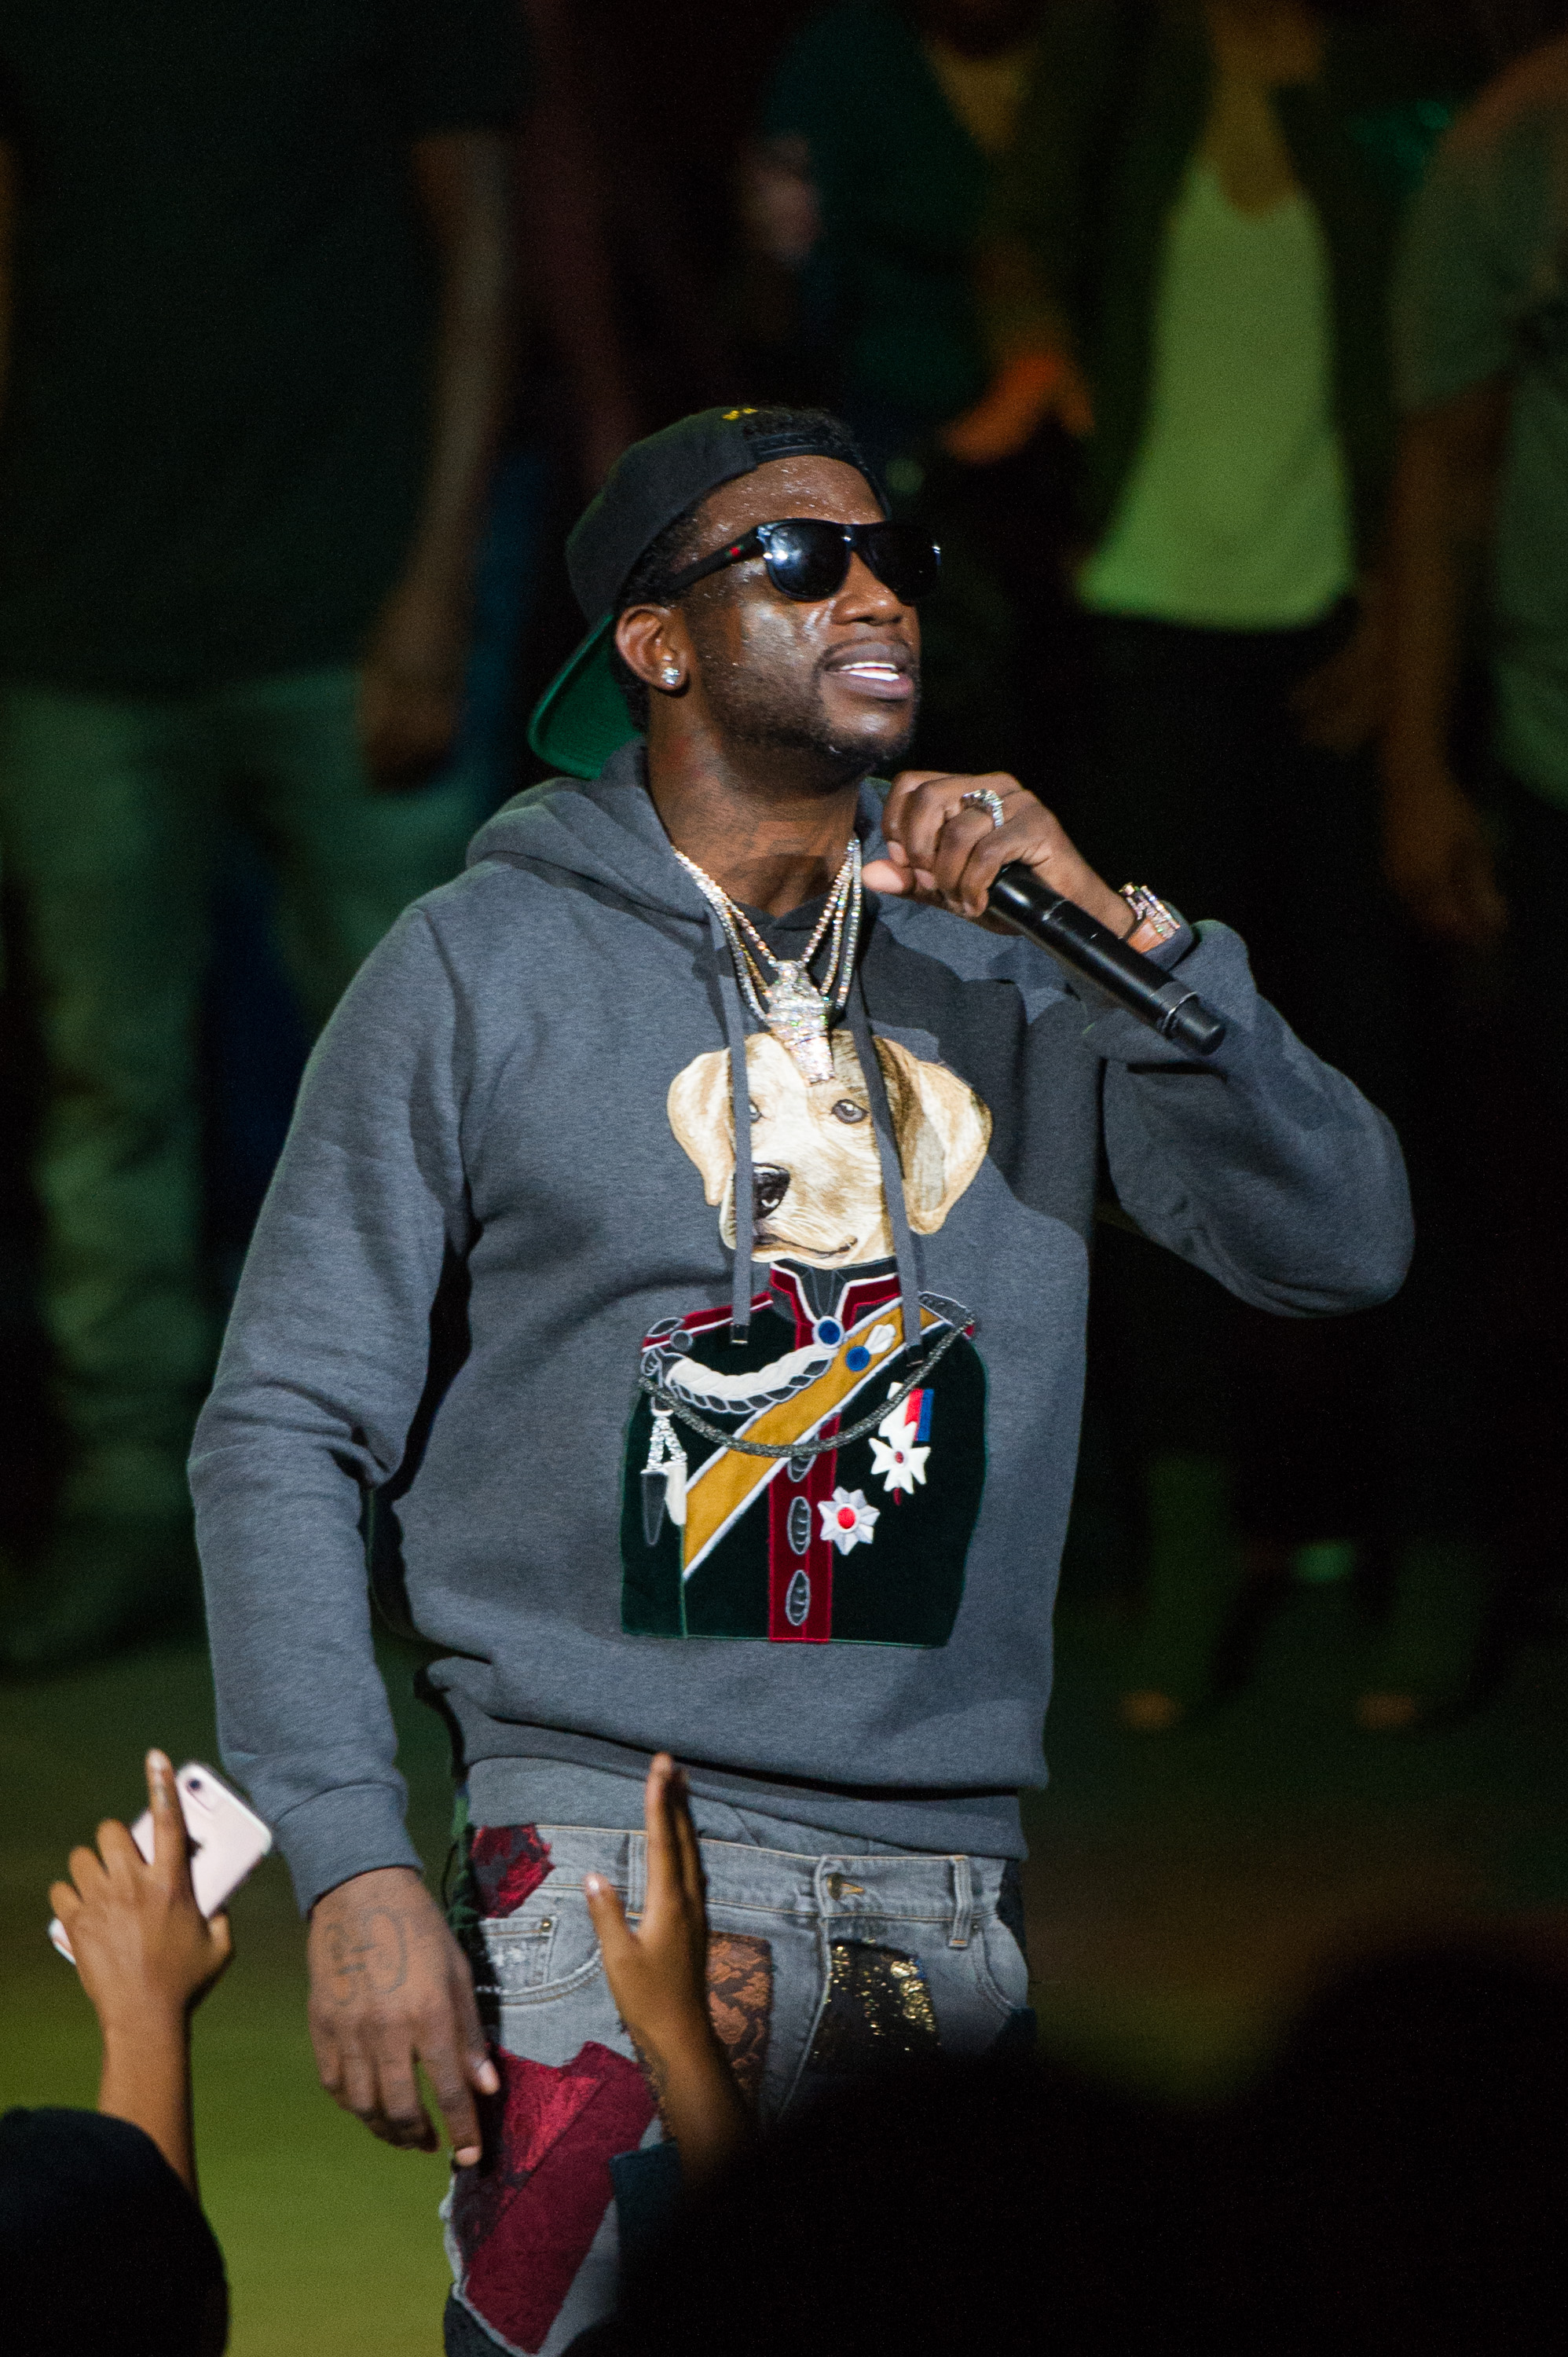 Gucci Mane In Concert - Detroit, Michigan